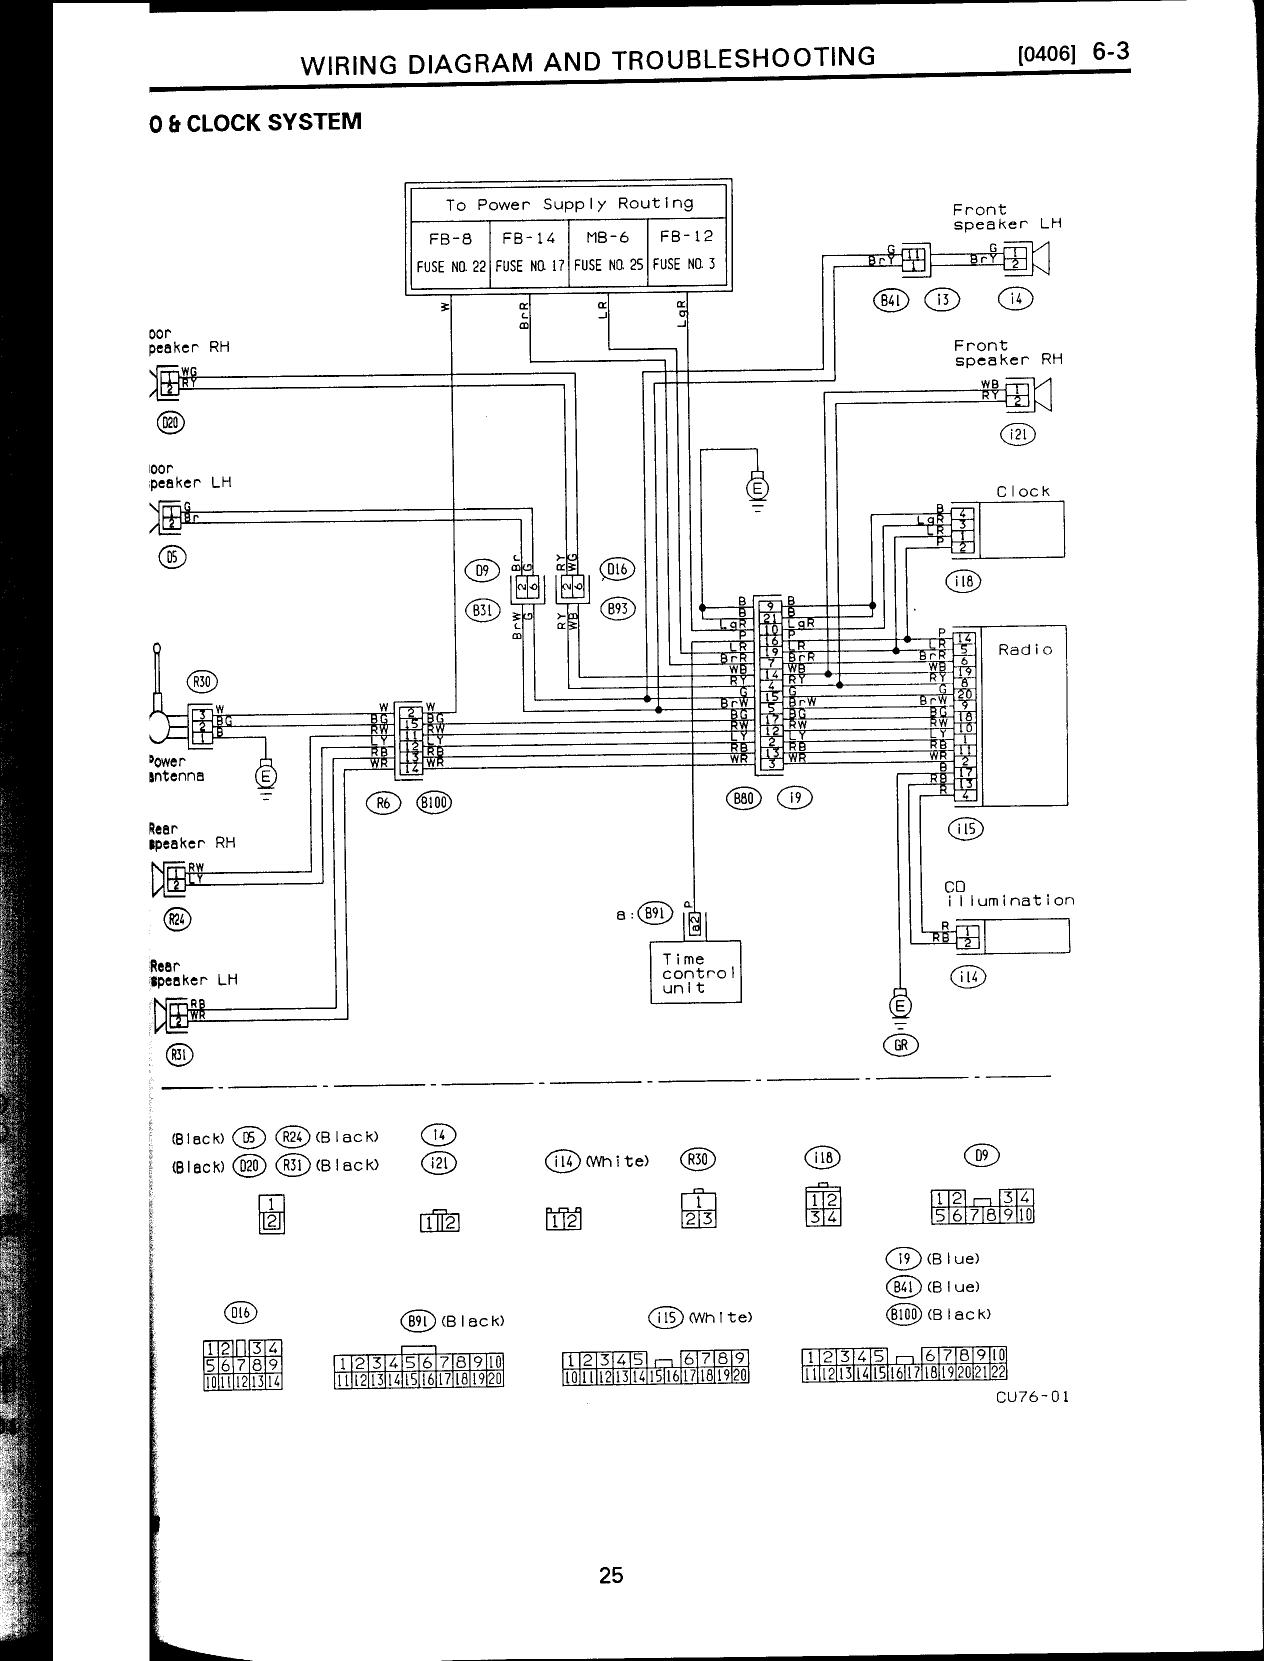 Pinout Diagram Moreover Goodman Furnace Control Board Wiring Diagram